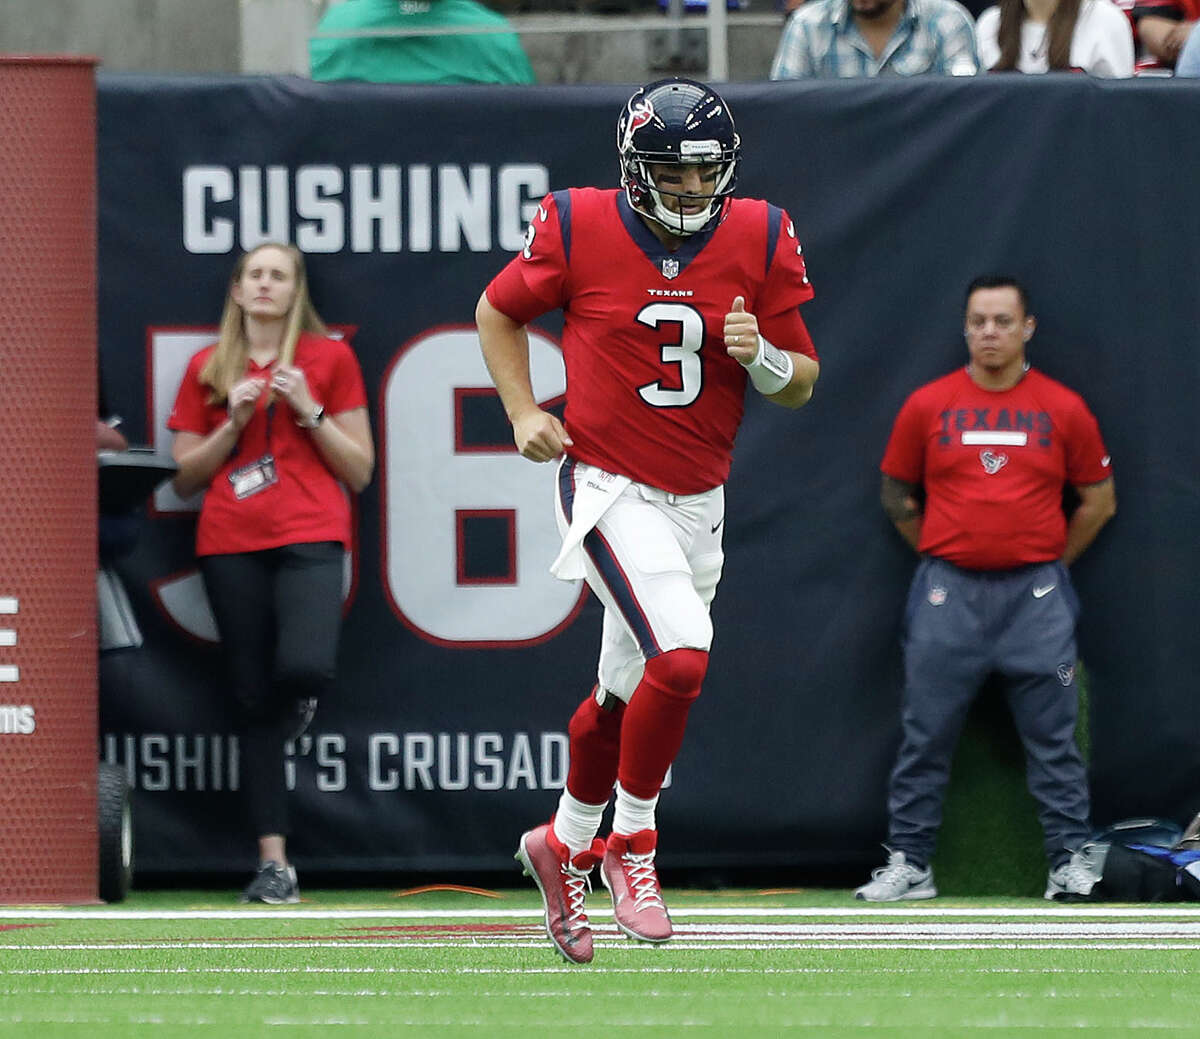 Houston Texans quarterback Tom Savage (3) runs off the field after getting sacked and suffering a concussion during the second quarter of an NFL football game at NRG Stadium, Sunday, Dec. 10, 2017, in Houston. ( Karen Warren / Houston Chronicle )